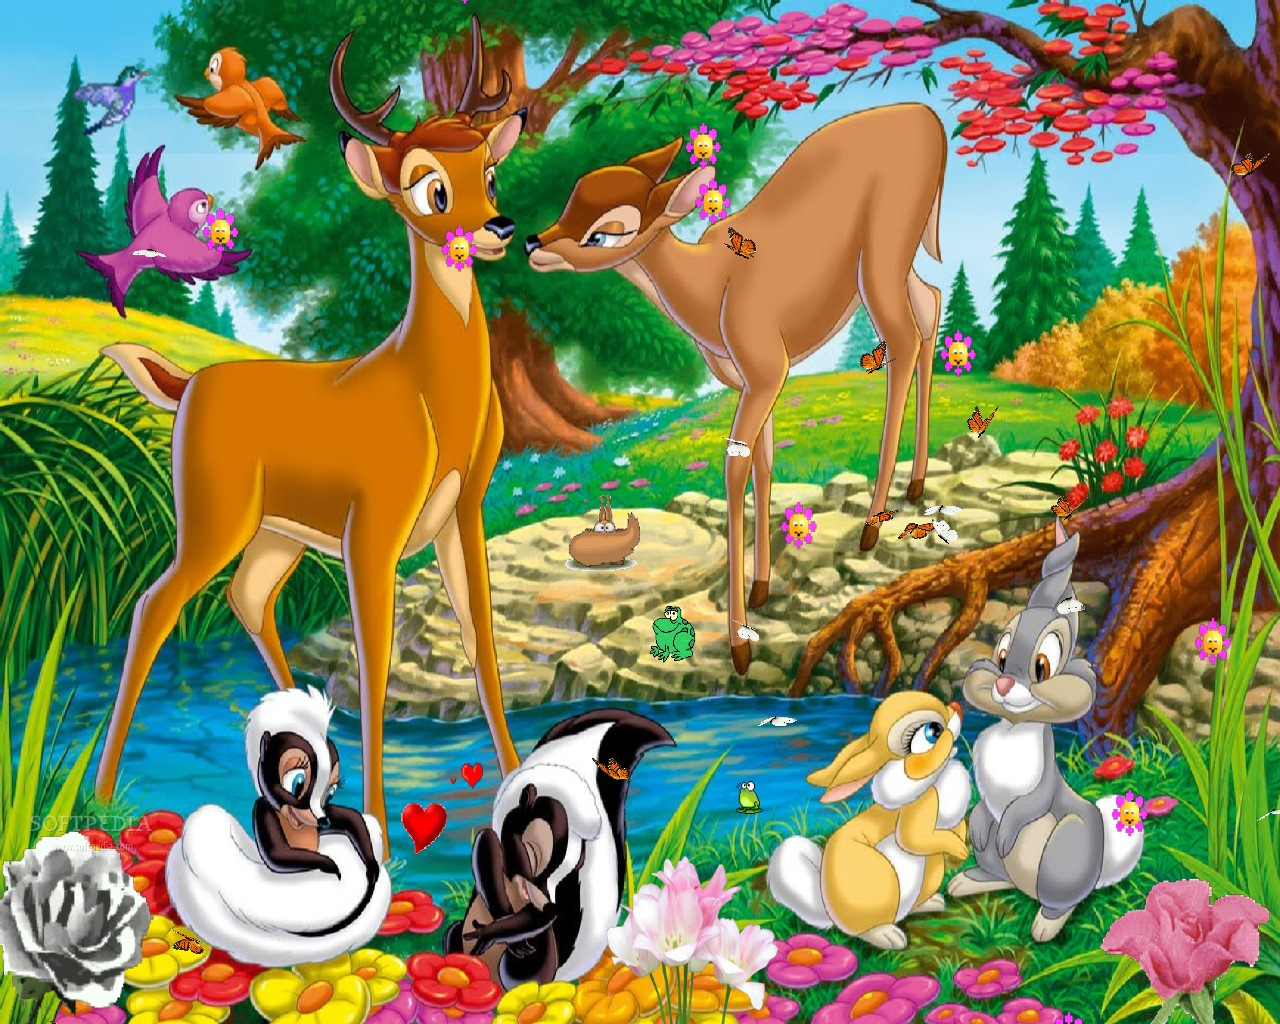 Disney Screensaver imgenes capturas de pantalla 1280x1024